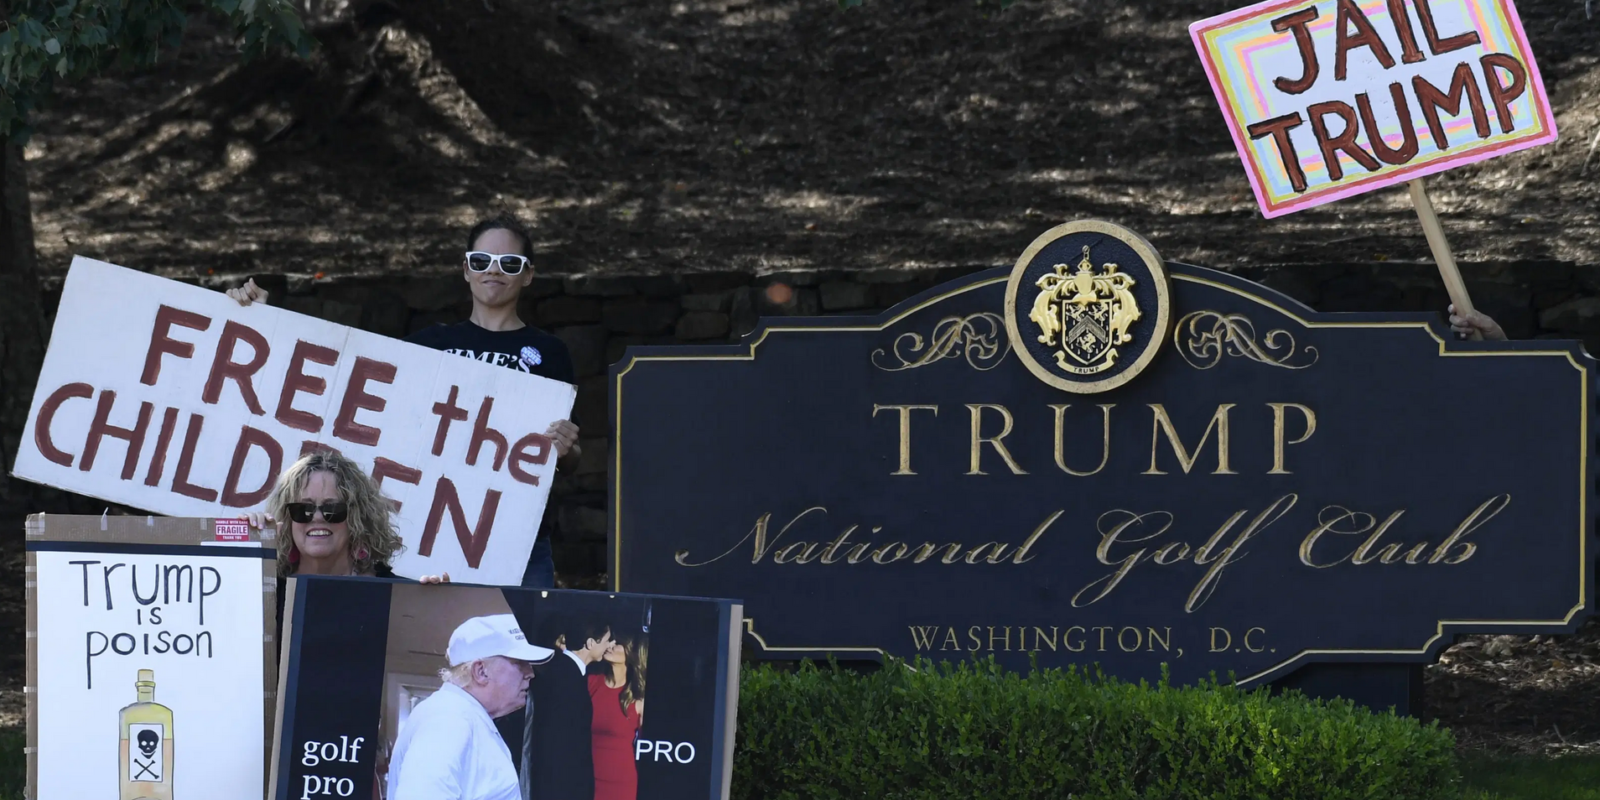 As Covid surges and his campaign flounders, Trump spends more taxpayer money at his own golf course